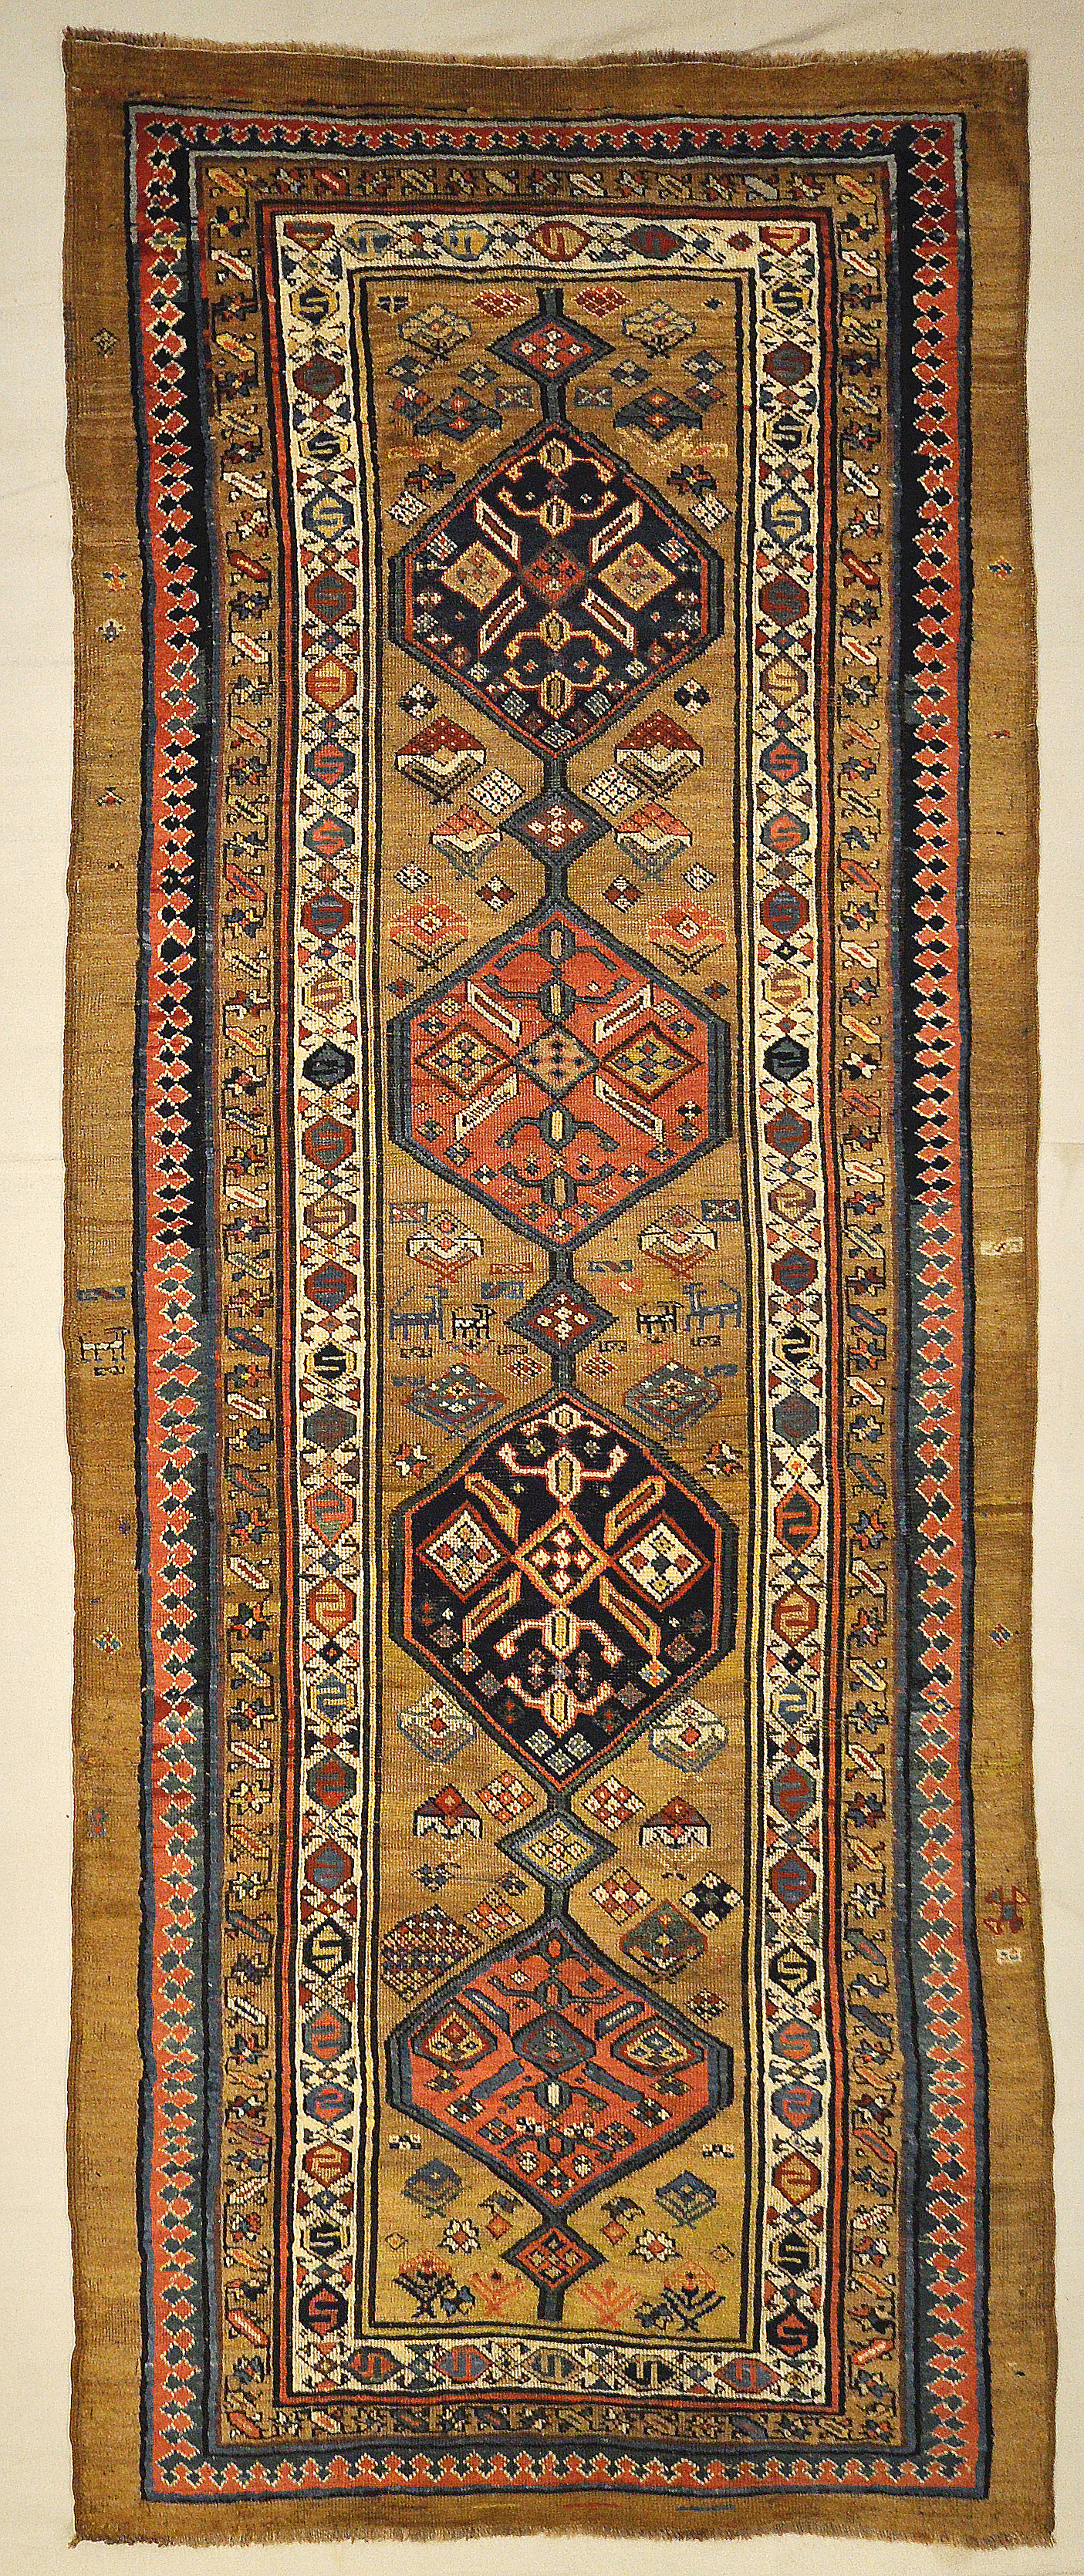 Antique Tribal Persian Camelhair Sarab Genuine Woven Carpet Art Authentic Intricate Santa Barbara Design Center Rugs and More